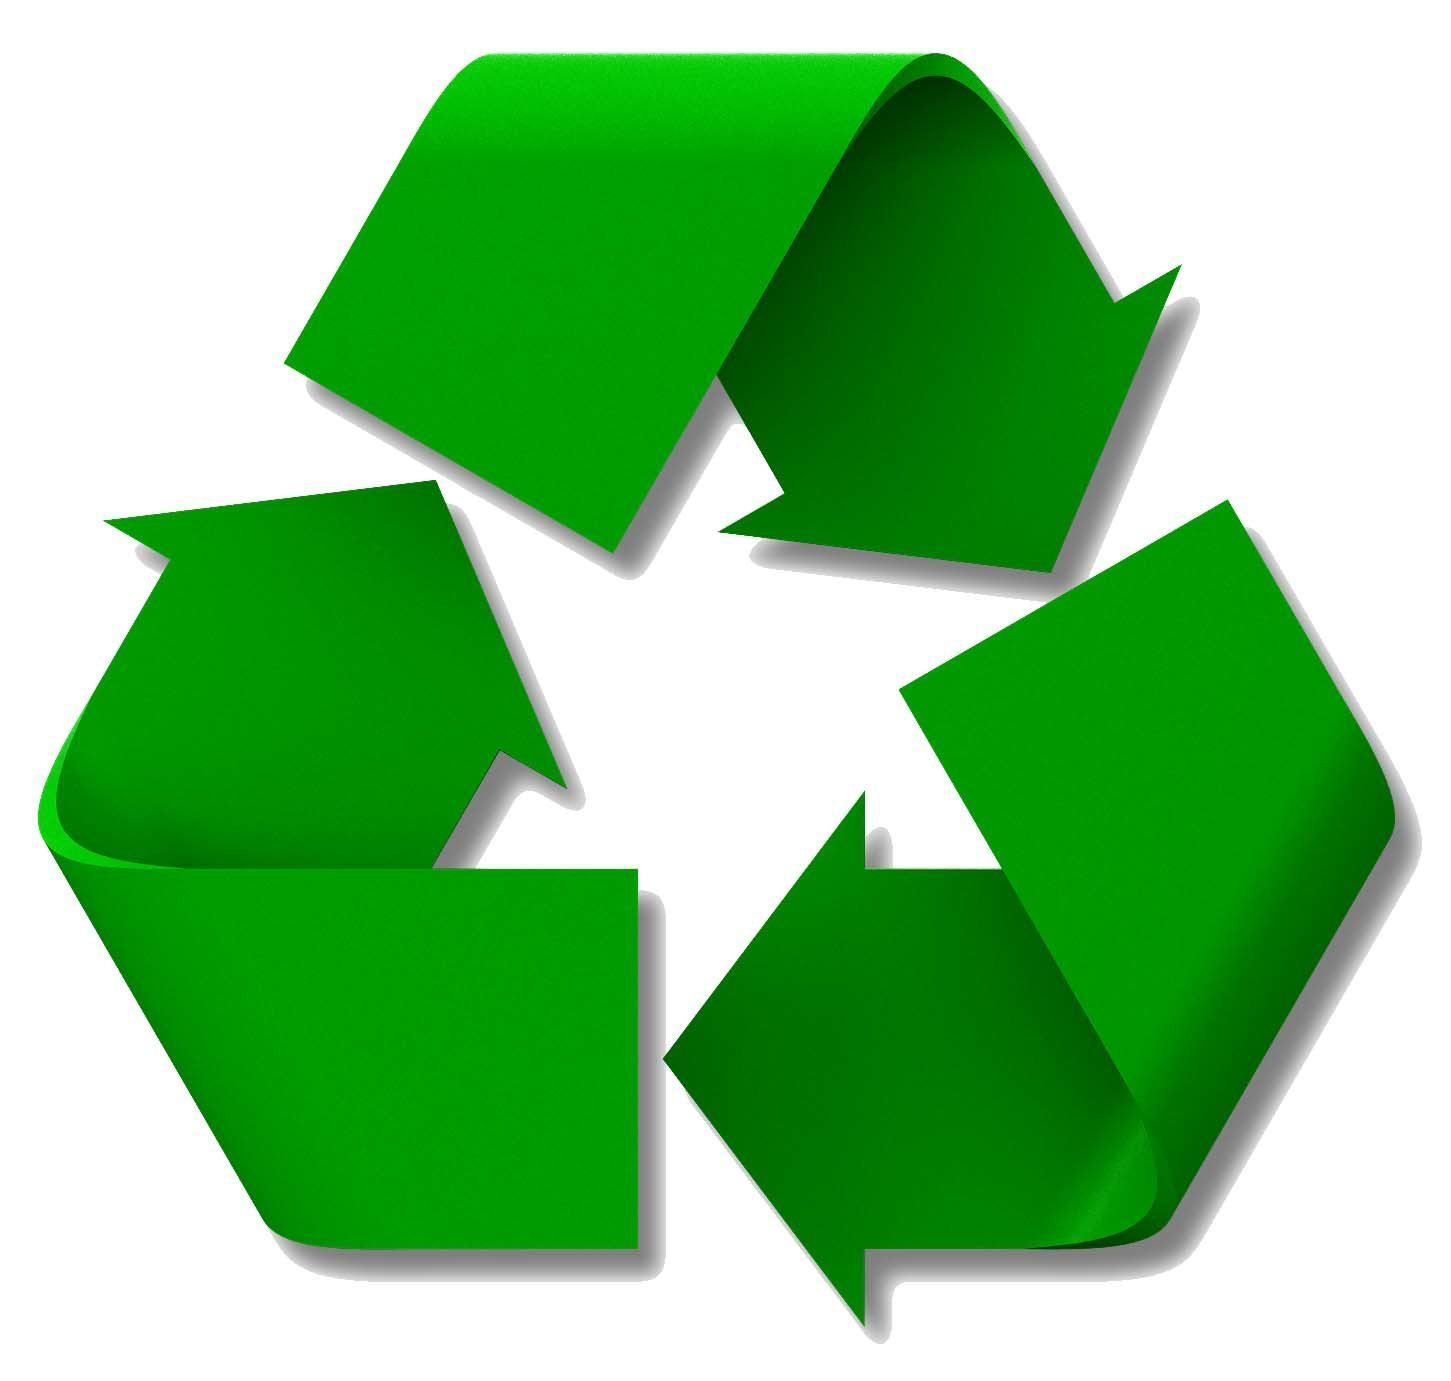 Environmental: Protecting the environment through recycling